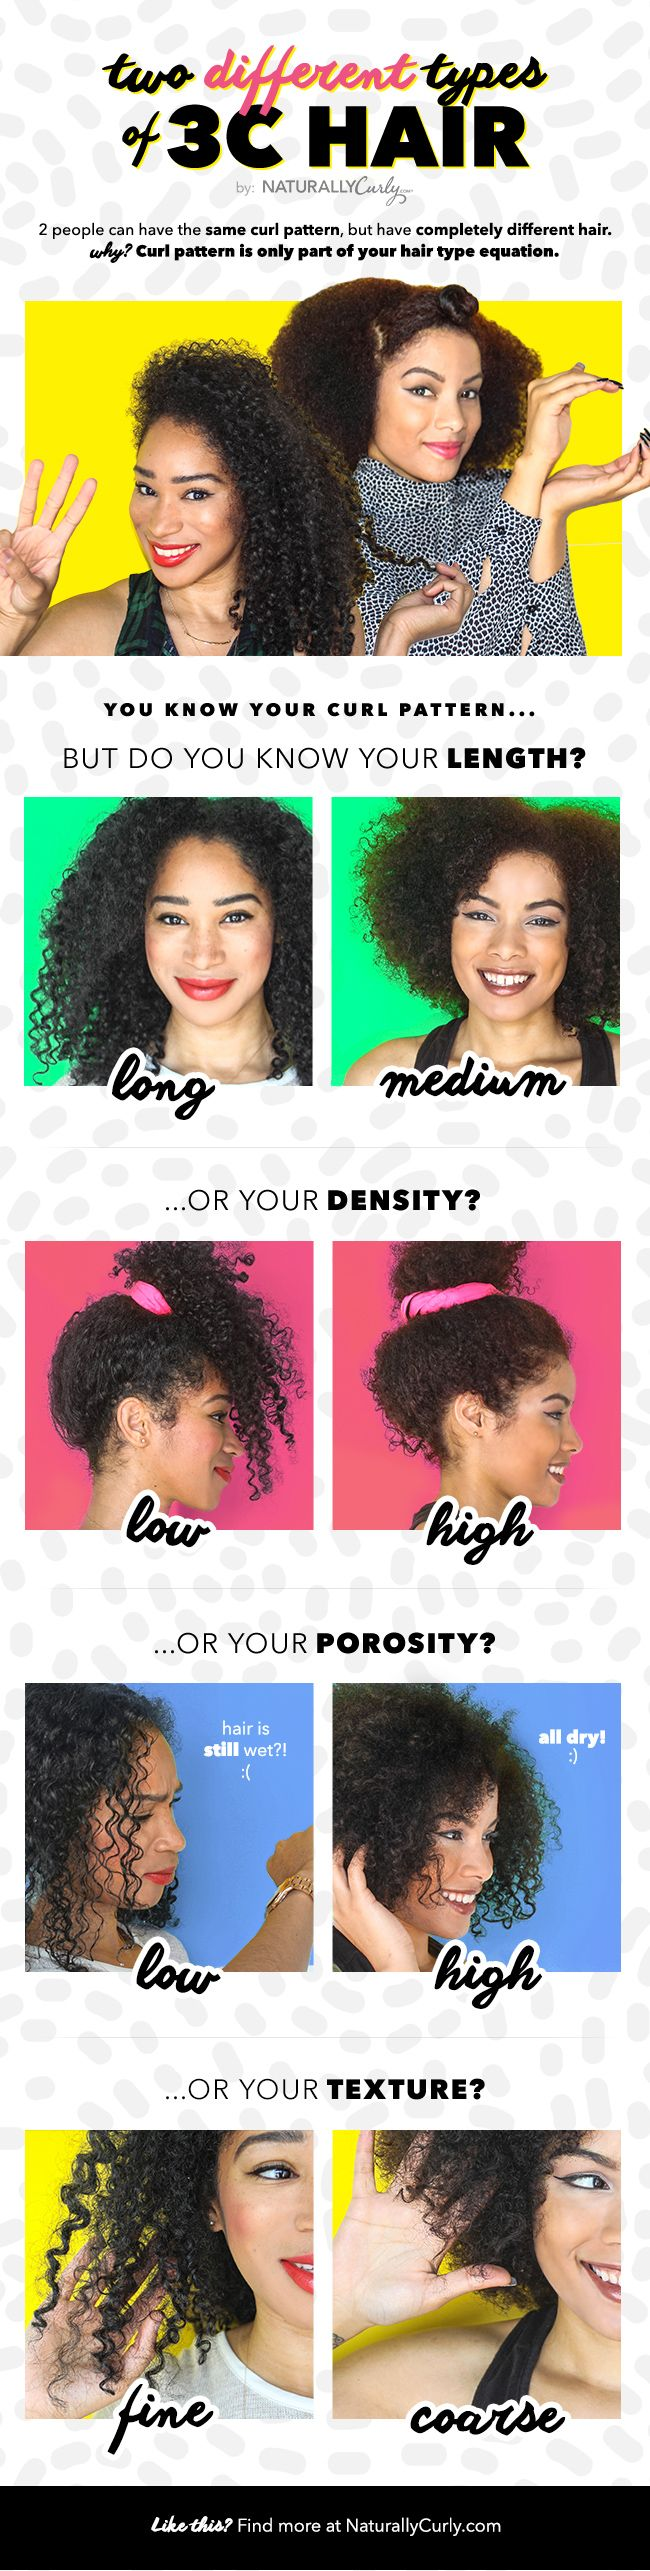 3c hair infographic. My hair is not as curly but it shows really nicely differences within one type of hair. Both ladies have beautiful hair by the way ☺